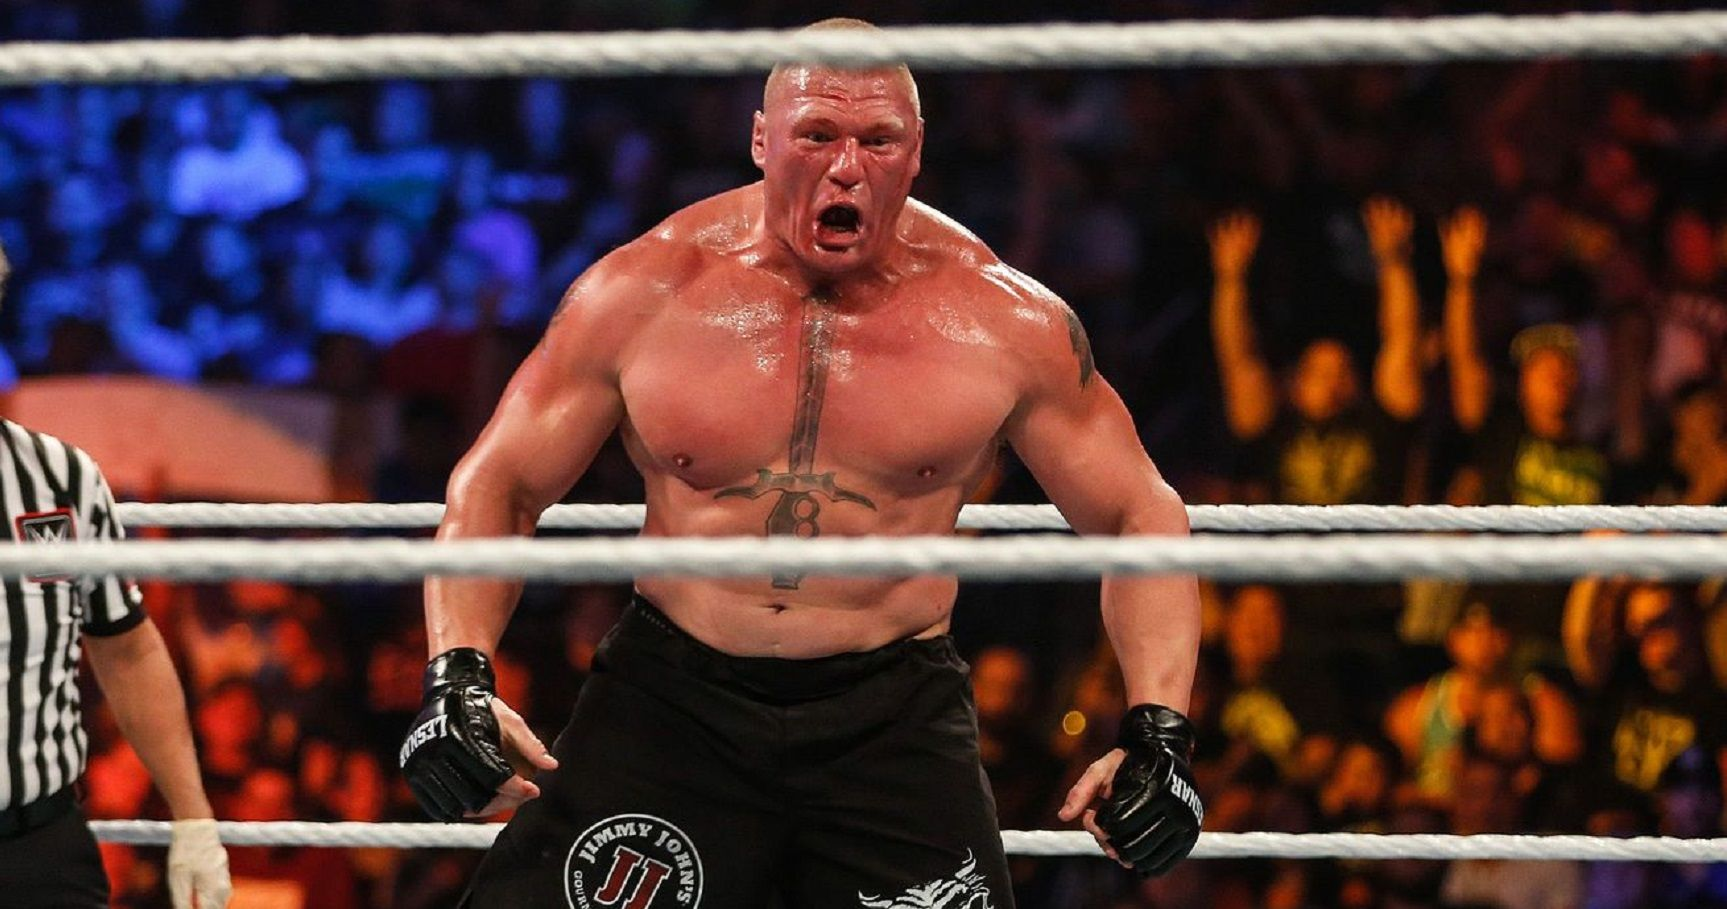 What WWE Plans For Brock Lesnar Were Changed?